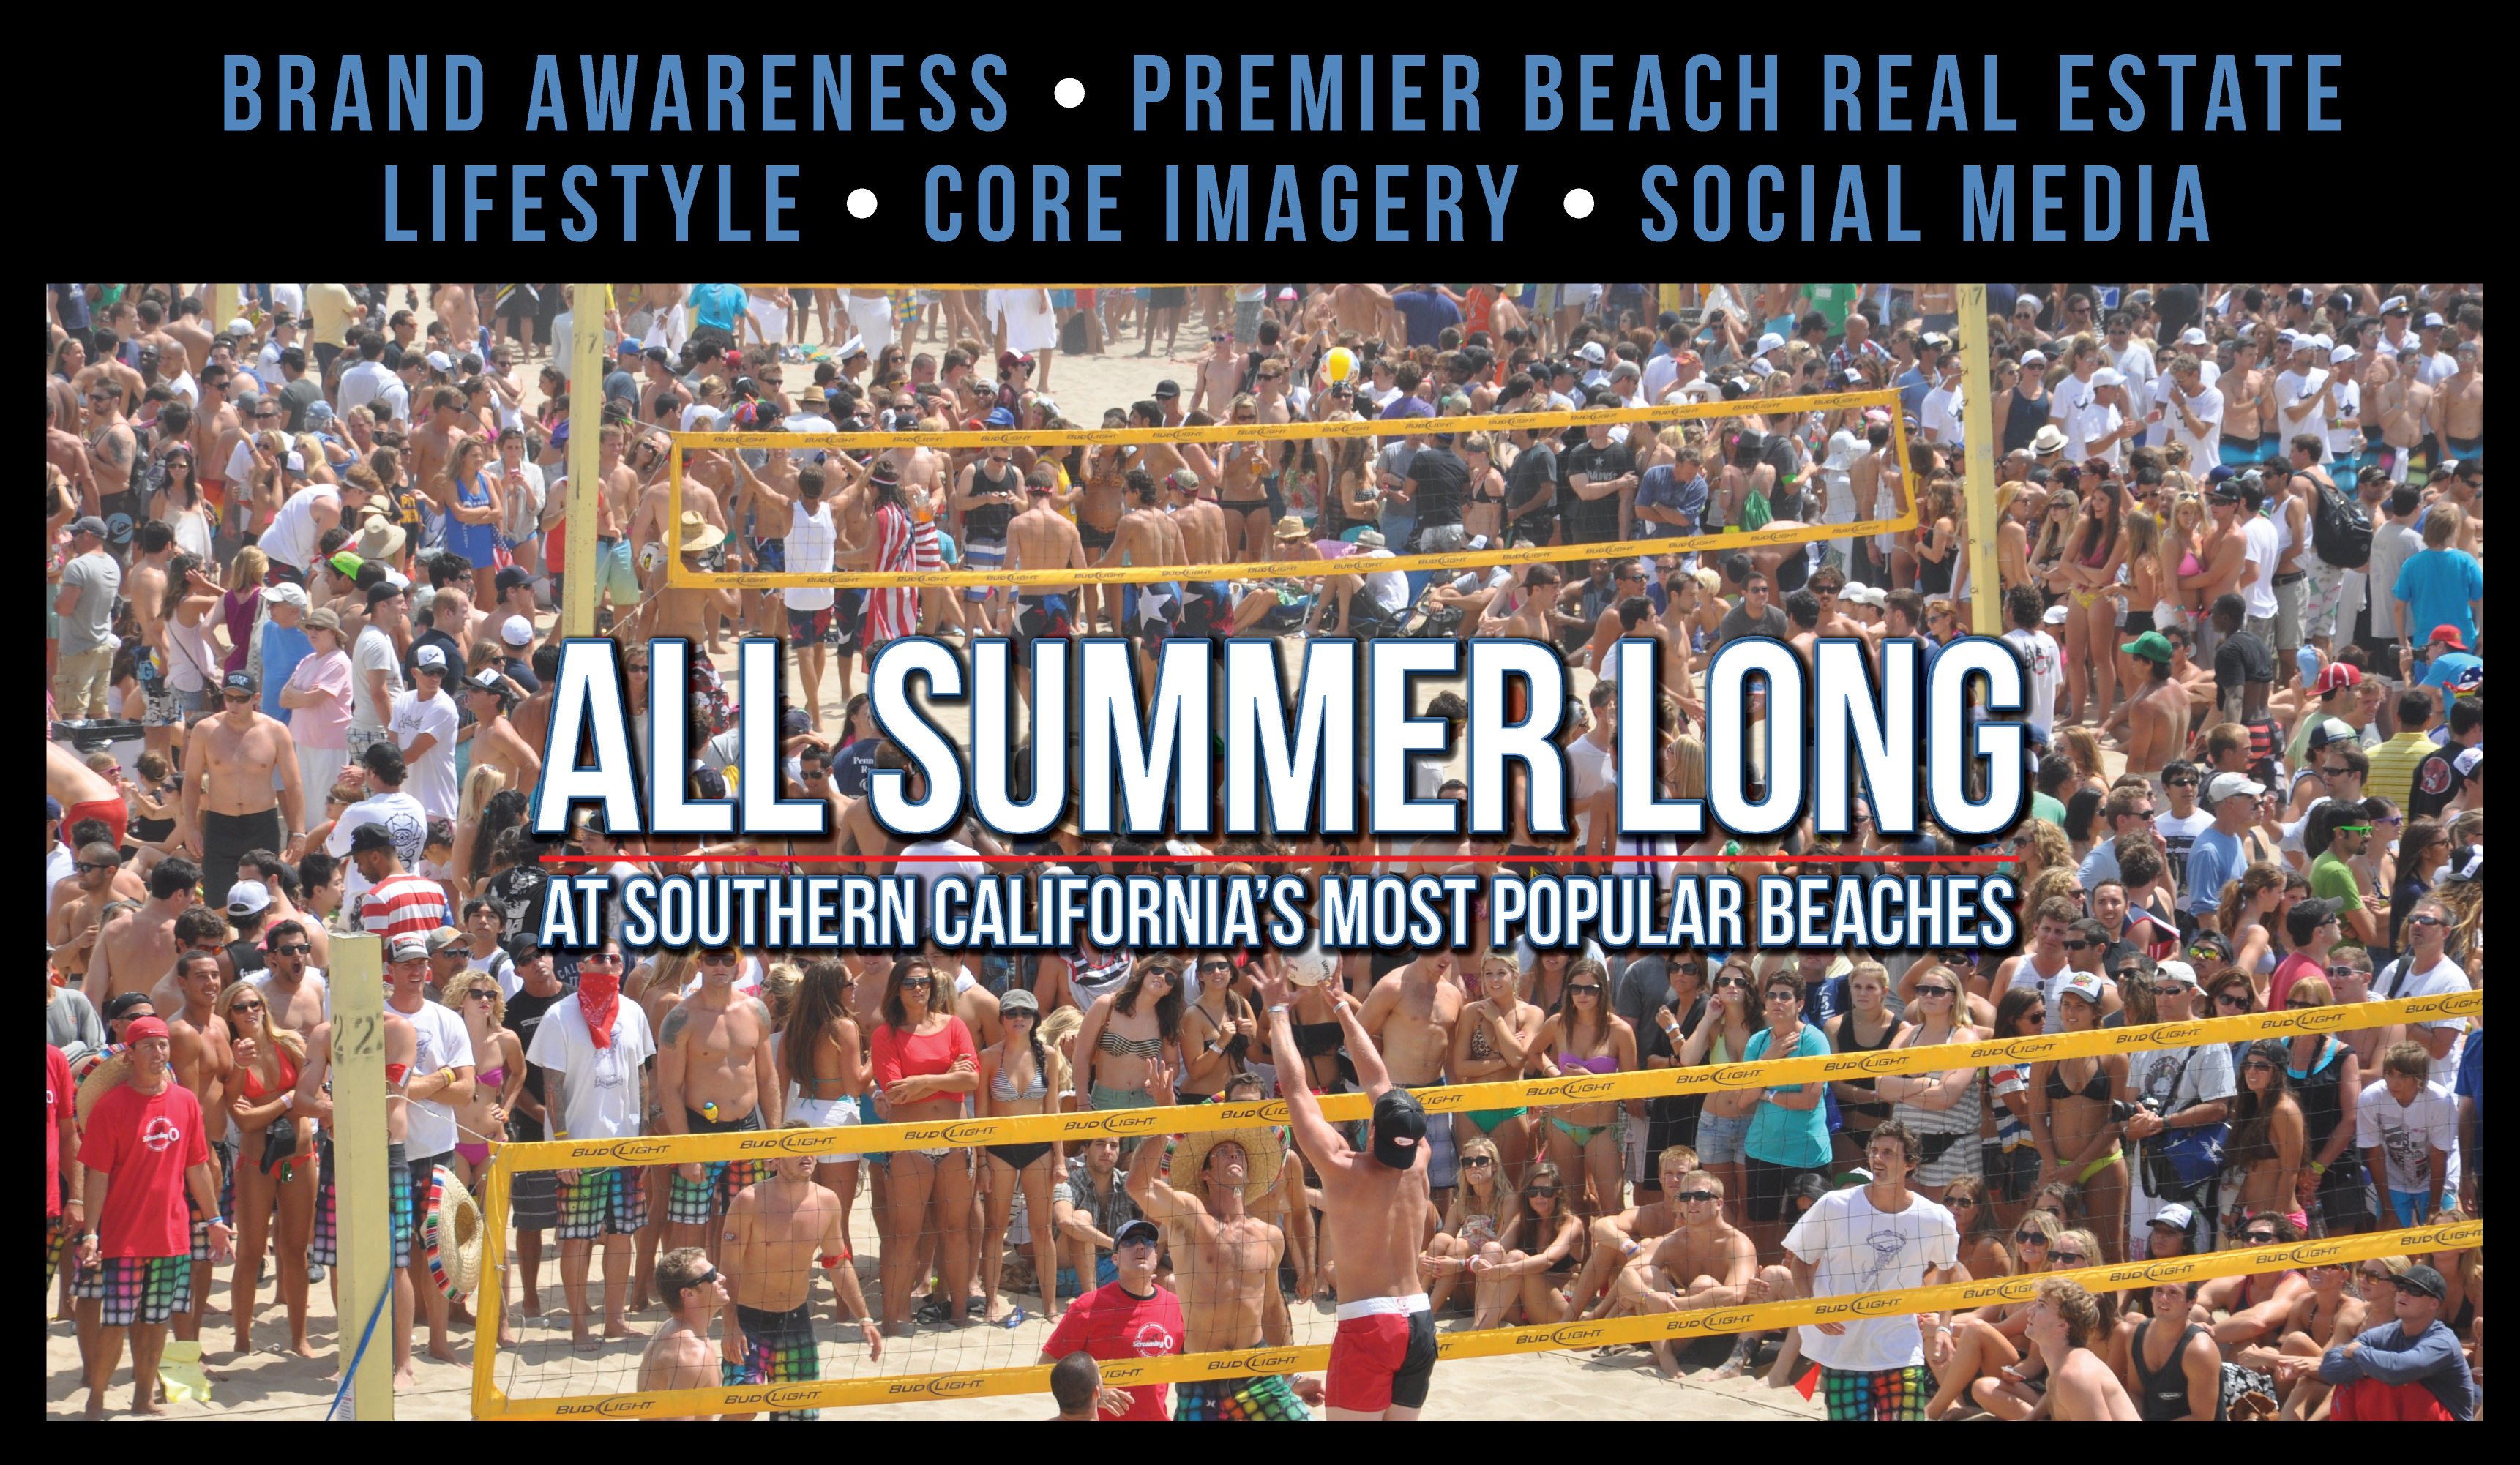 Beachsport.org - All Summer Long at Southern California's Most Popular Beaches